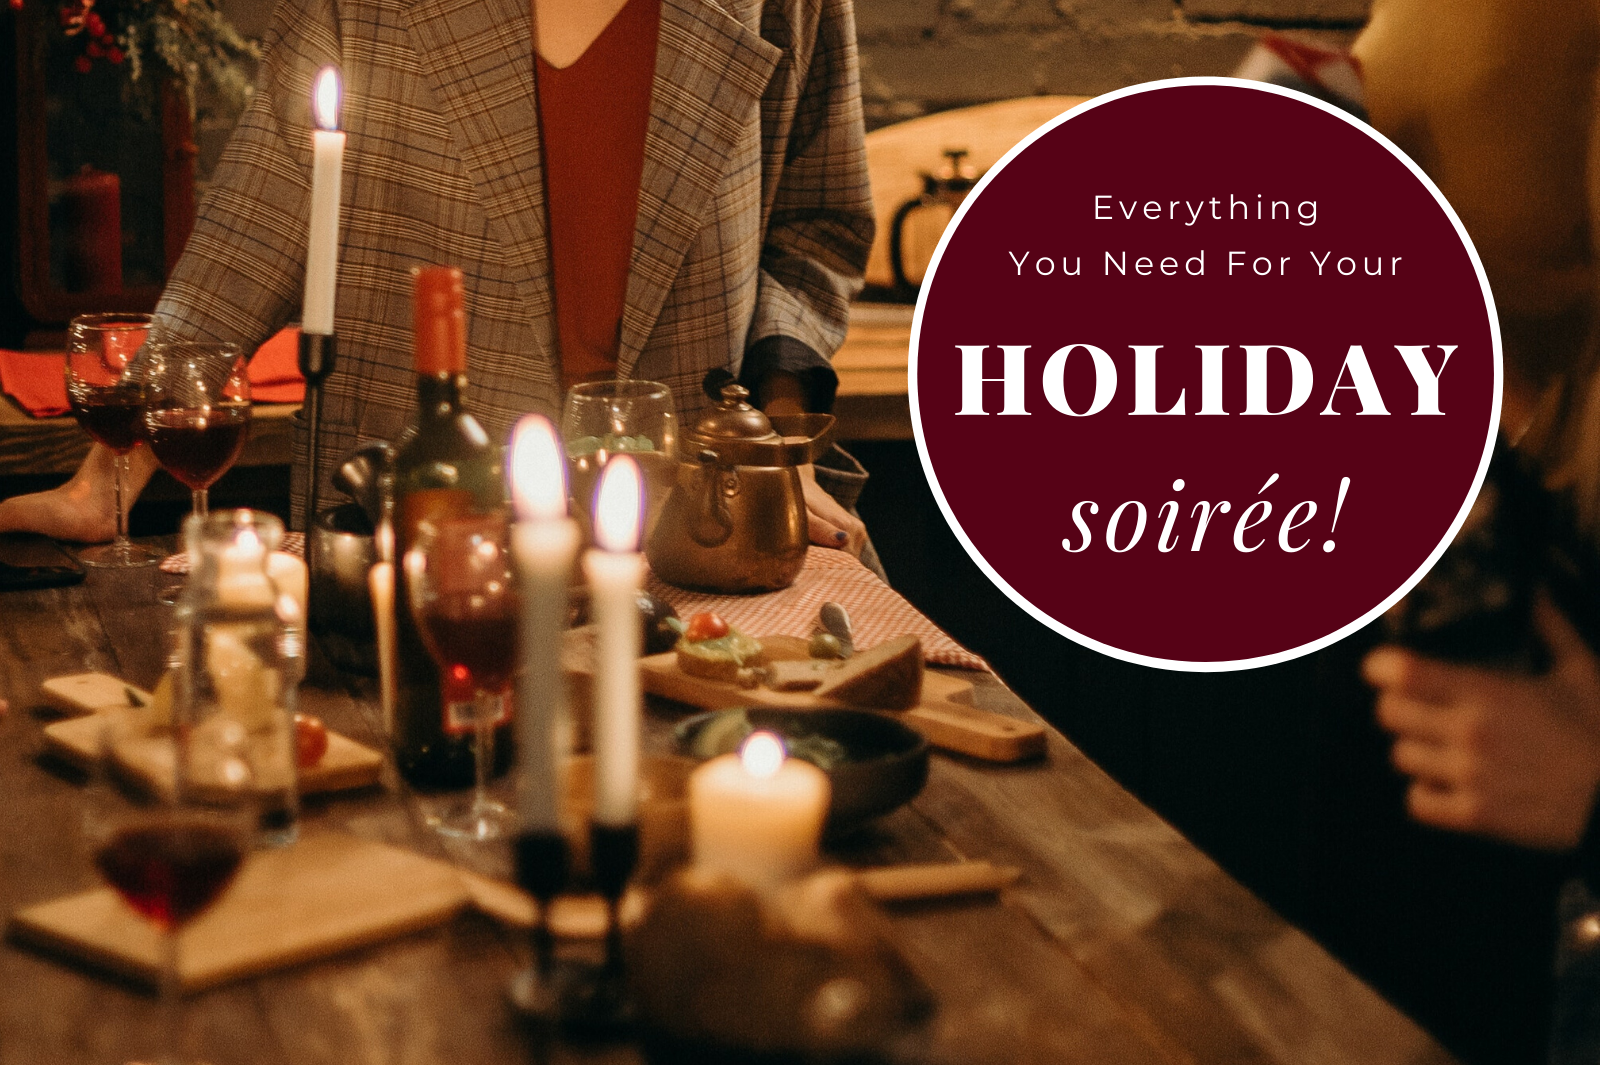 Everything You Need for Your Next Holiday Soirée